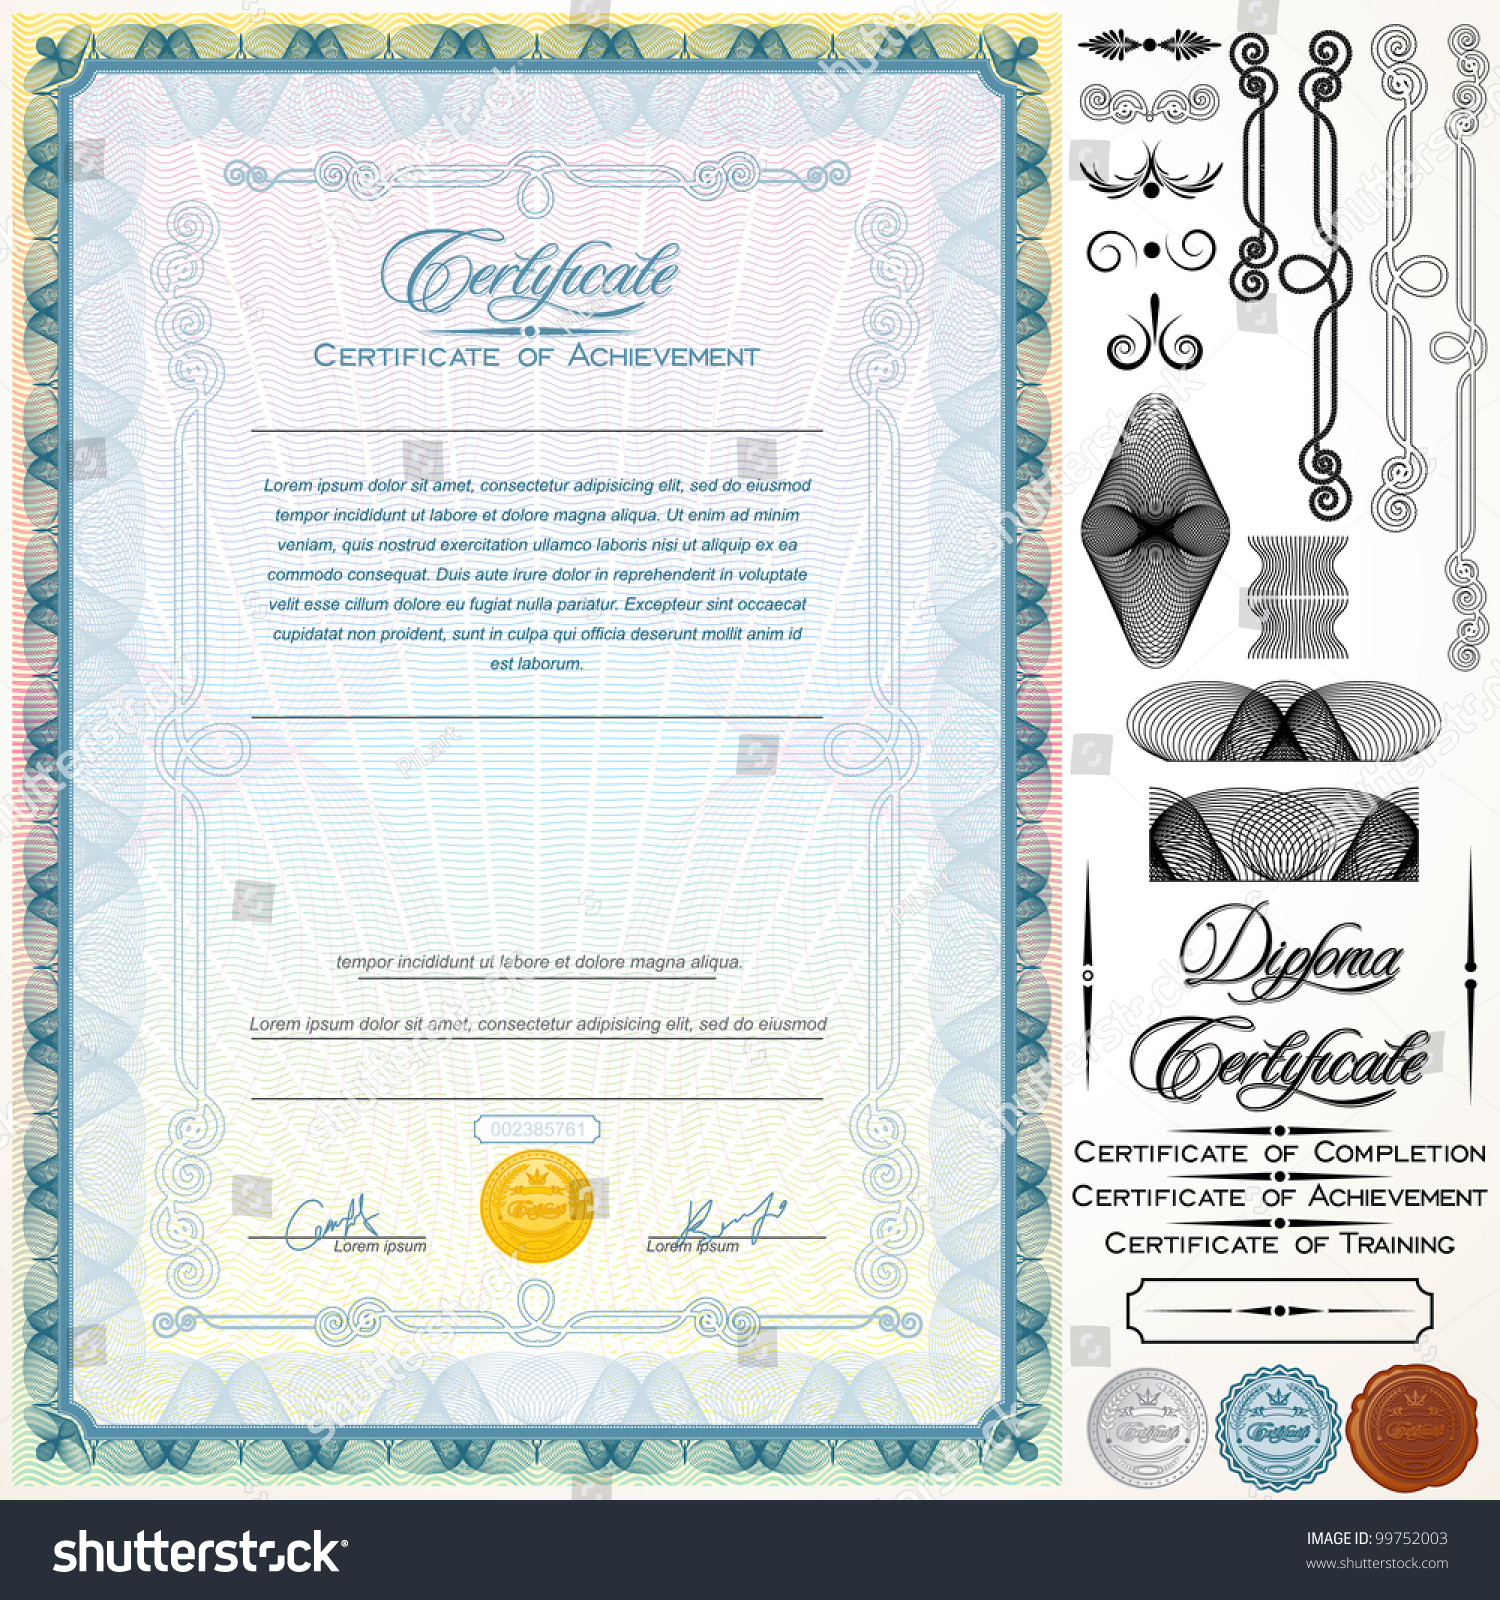 customizable certificate template - diploma or certificate template customizable design